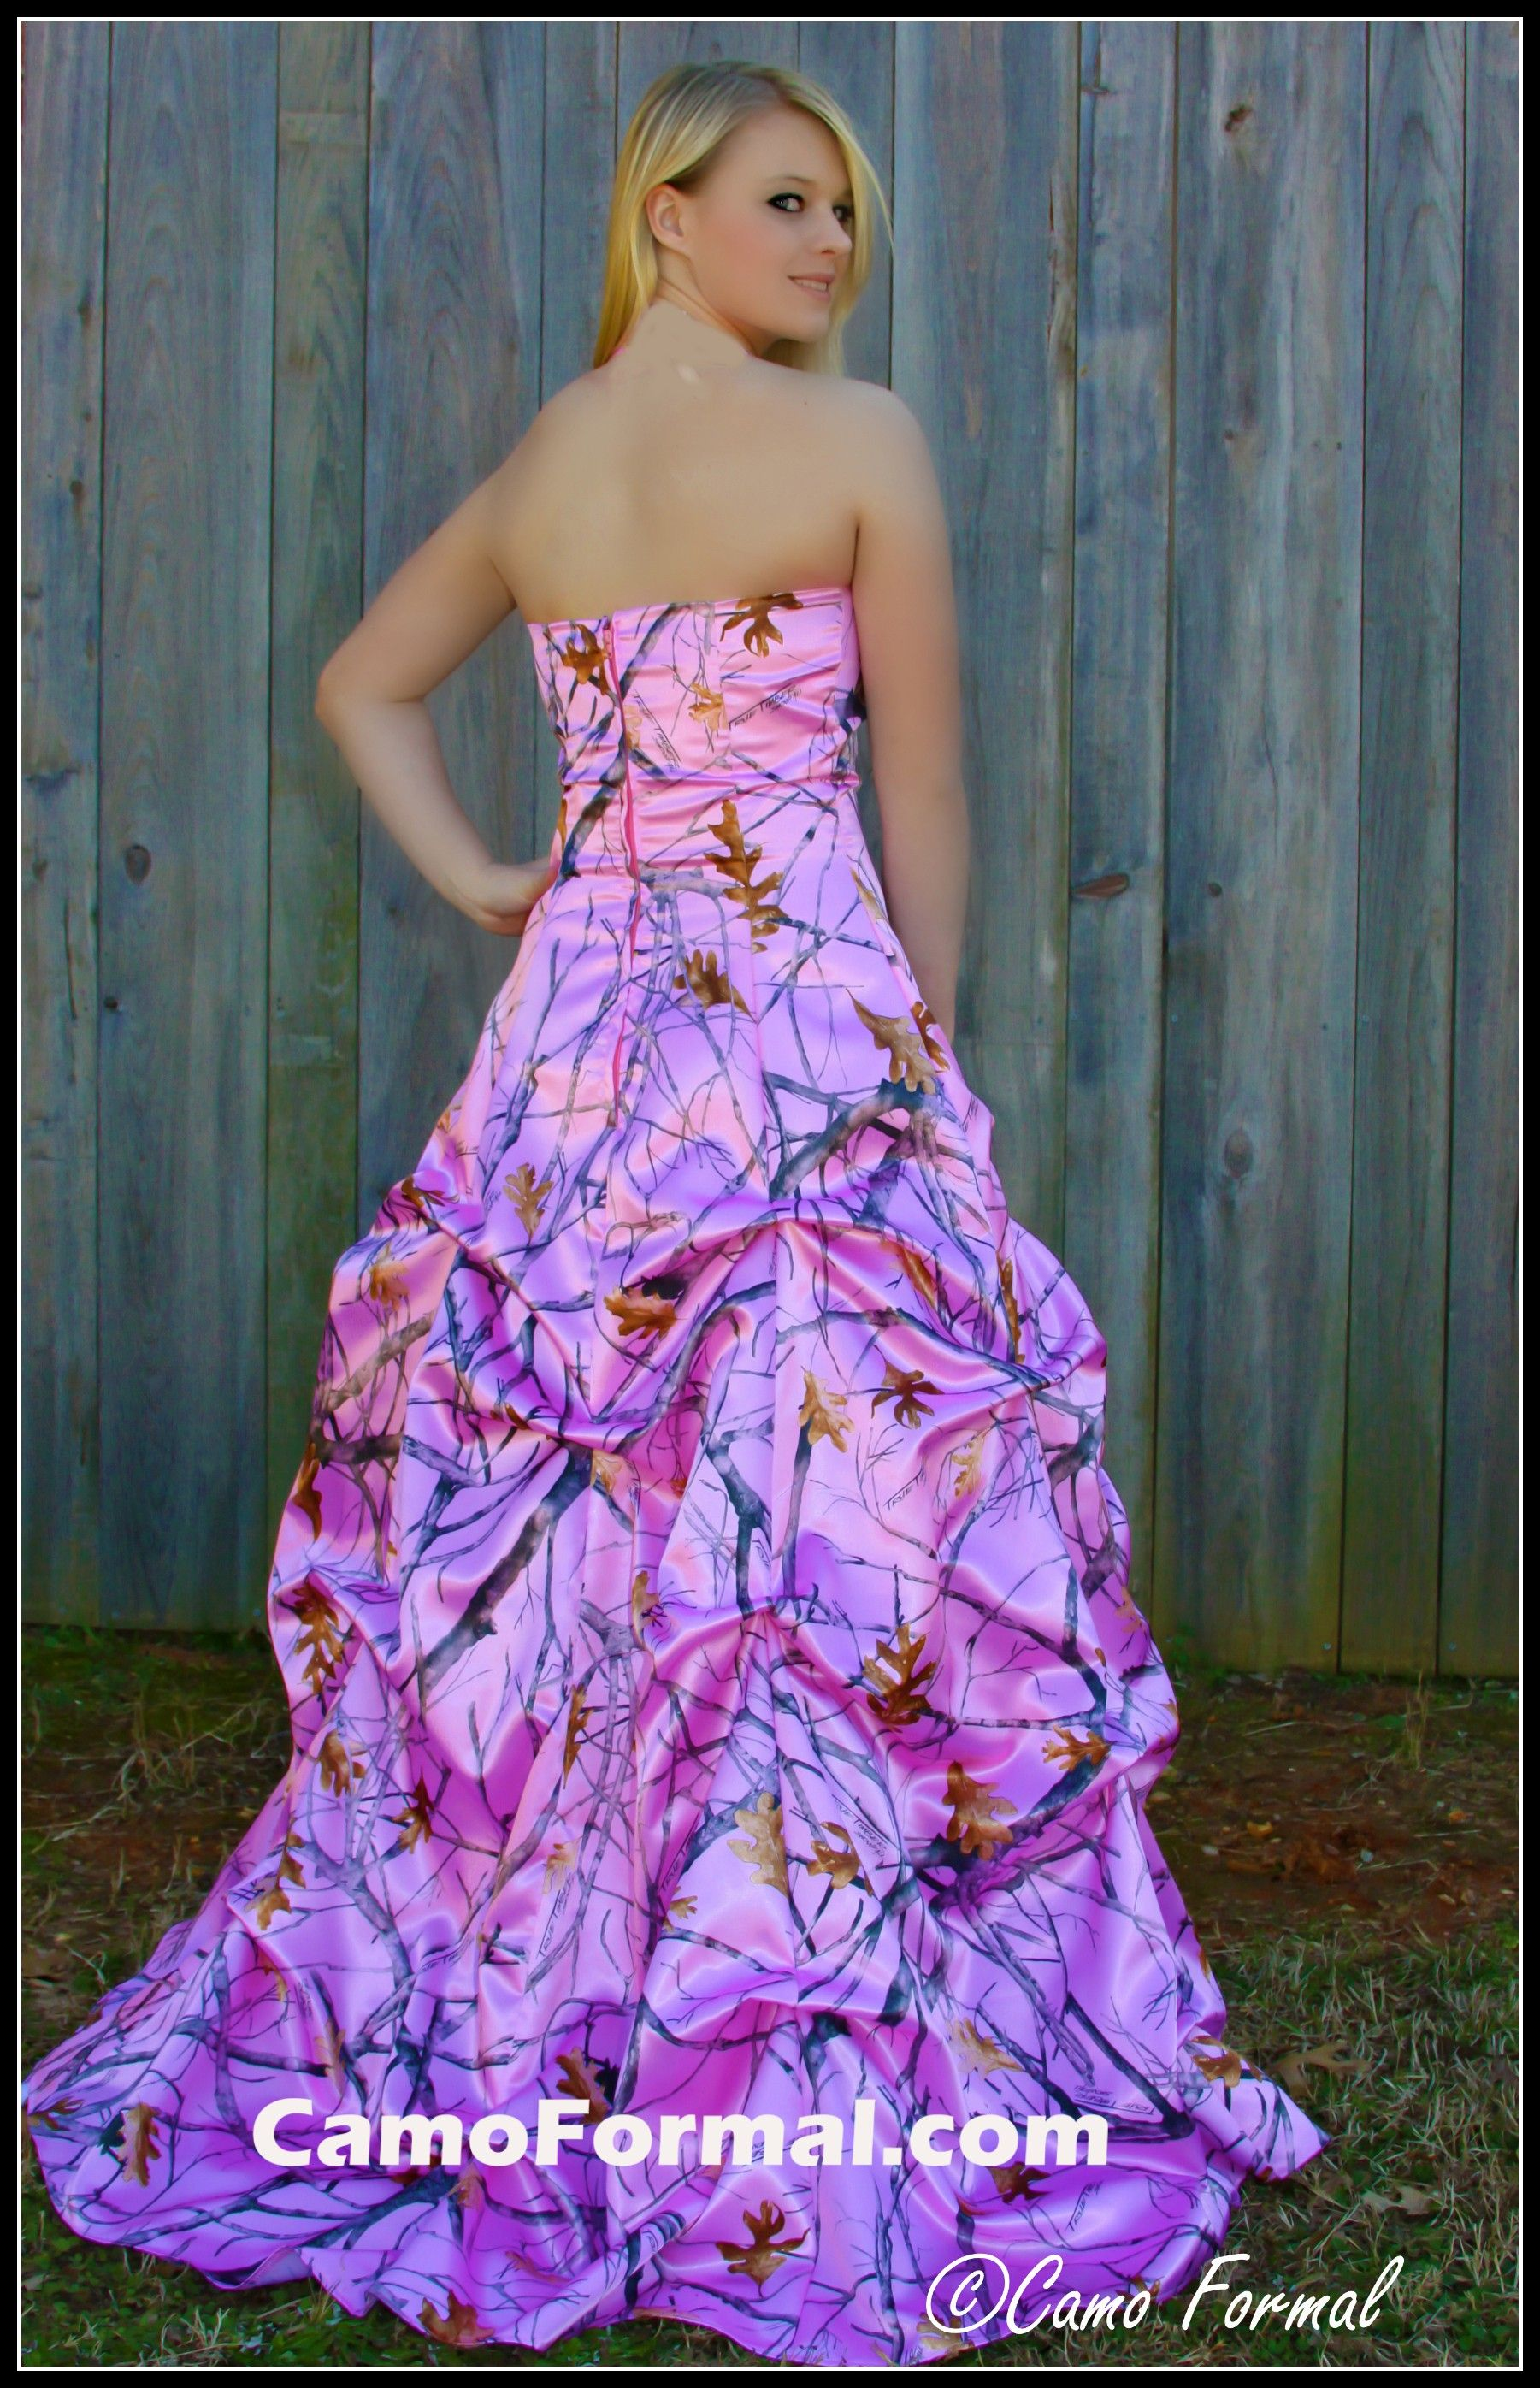 camo prom dresses | ... Oak New Breakup Attire Camouflage Prom ...